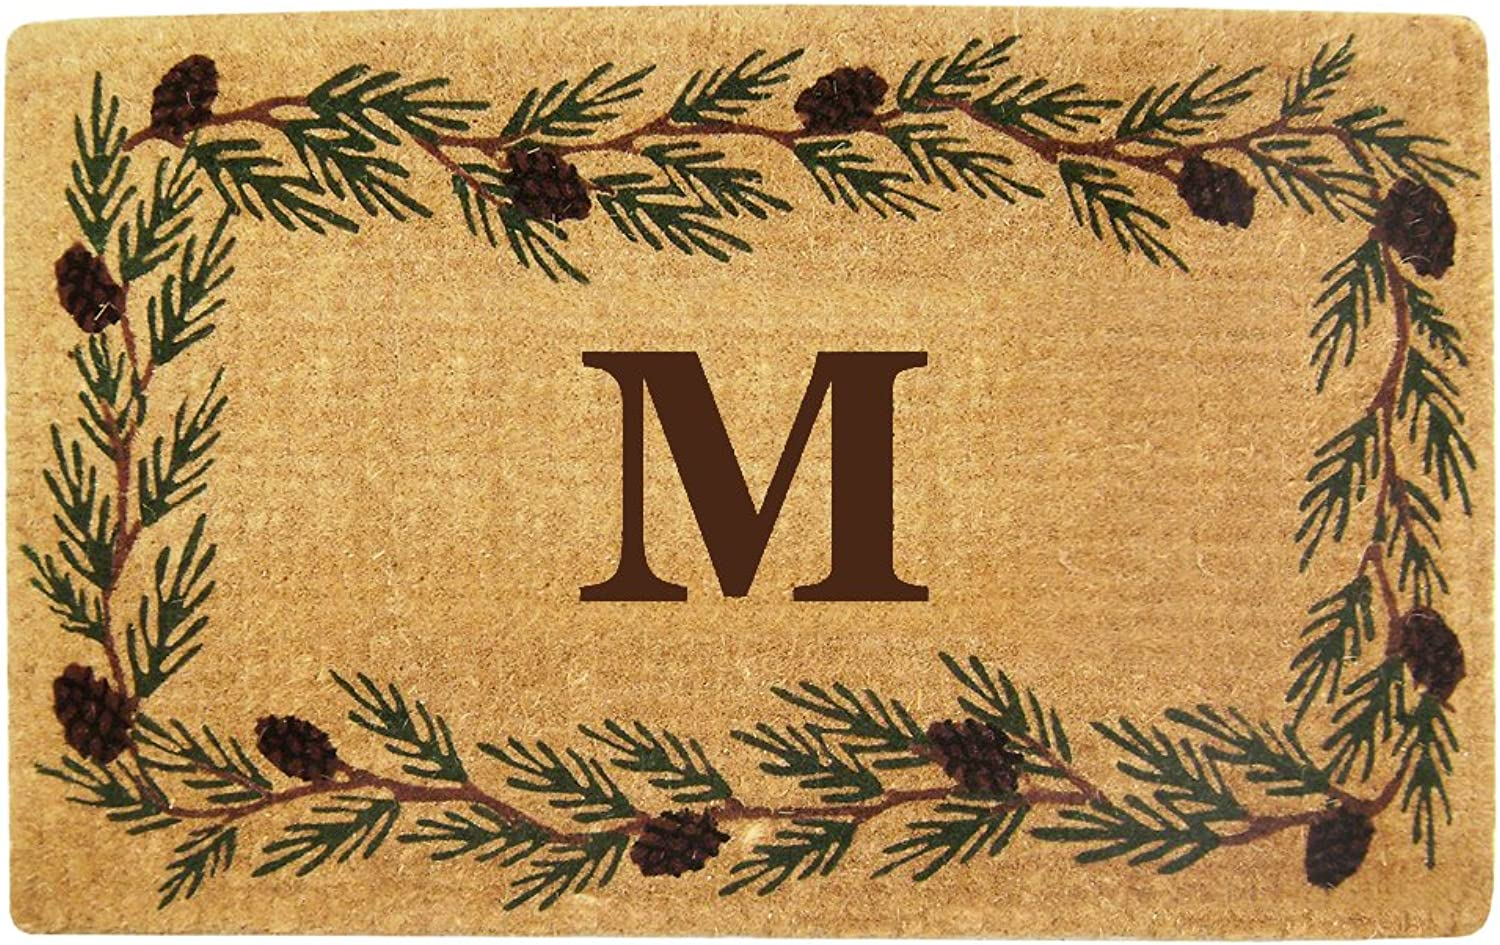 Nedia Home Heavy Duty Coco Mat with Evergreen Border, 30 by 48-Inch, Monogrammed M